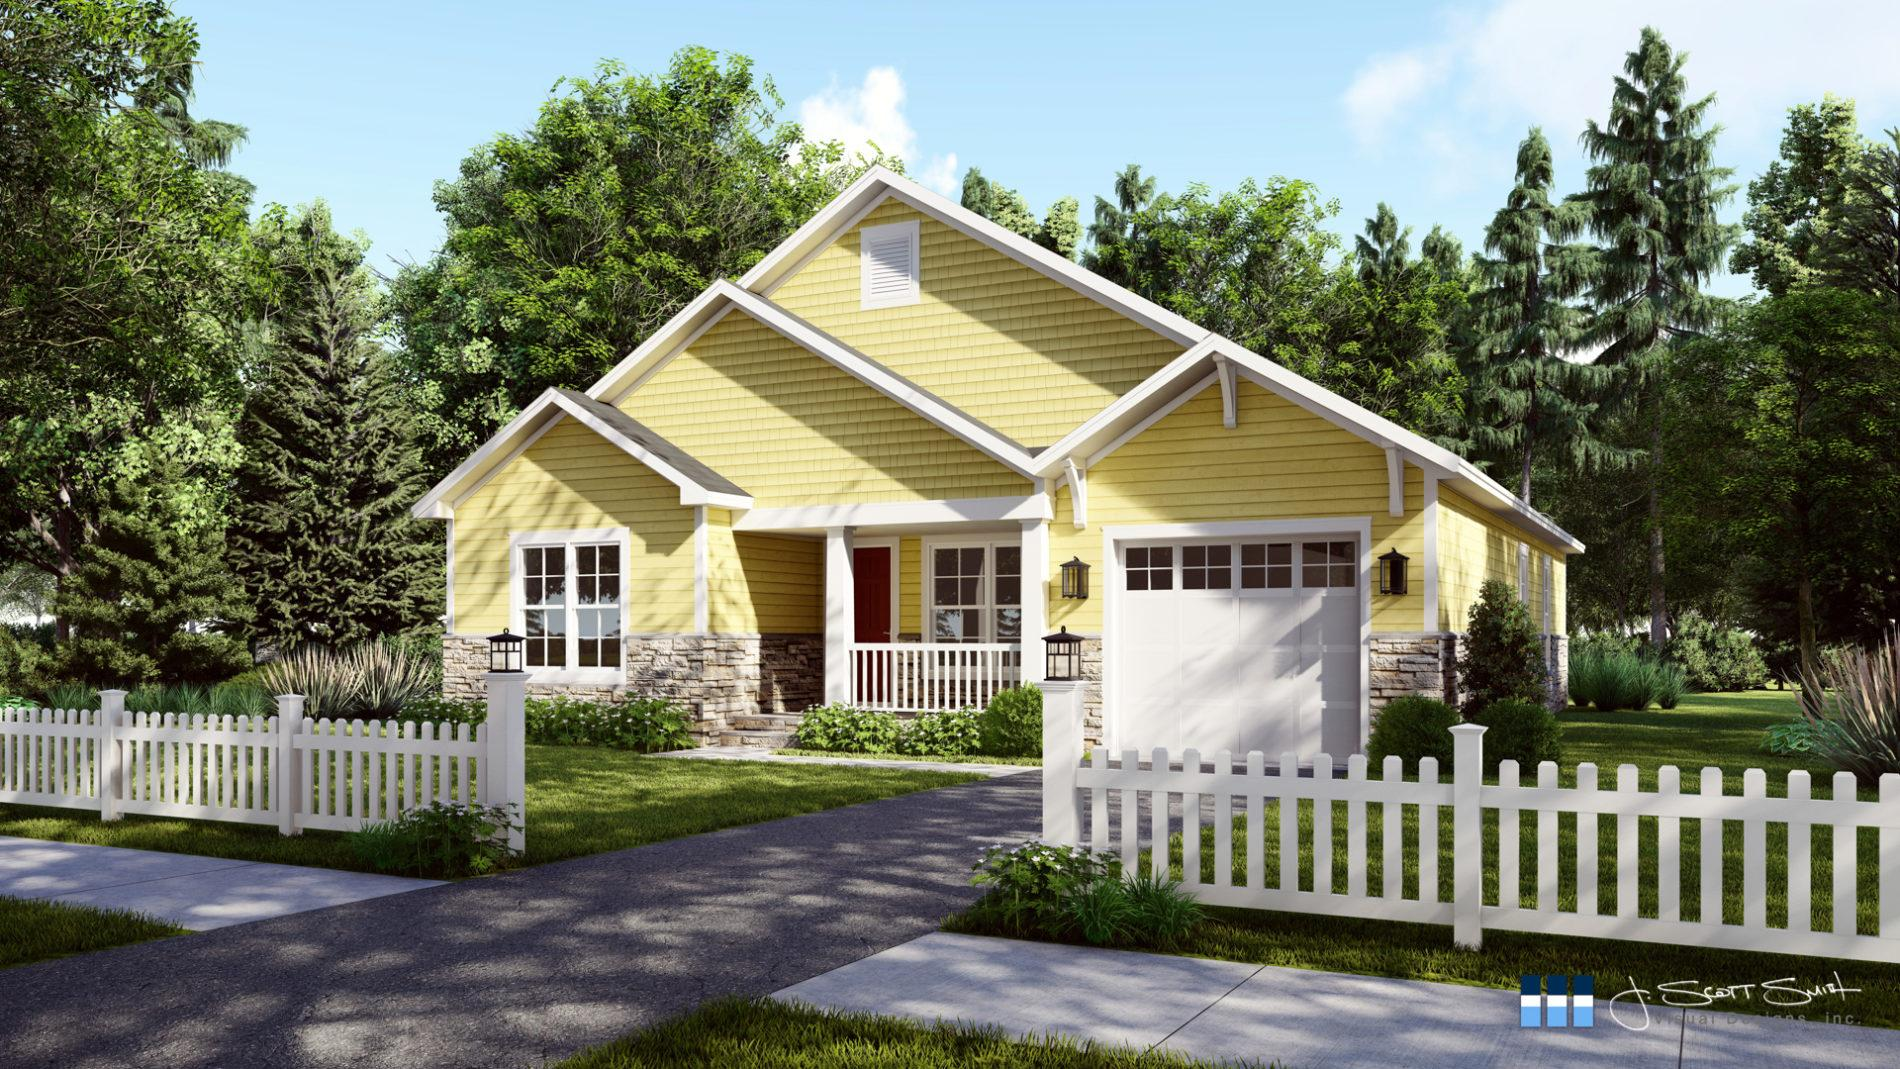 Architectural rendering of home 3D design model